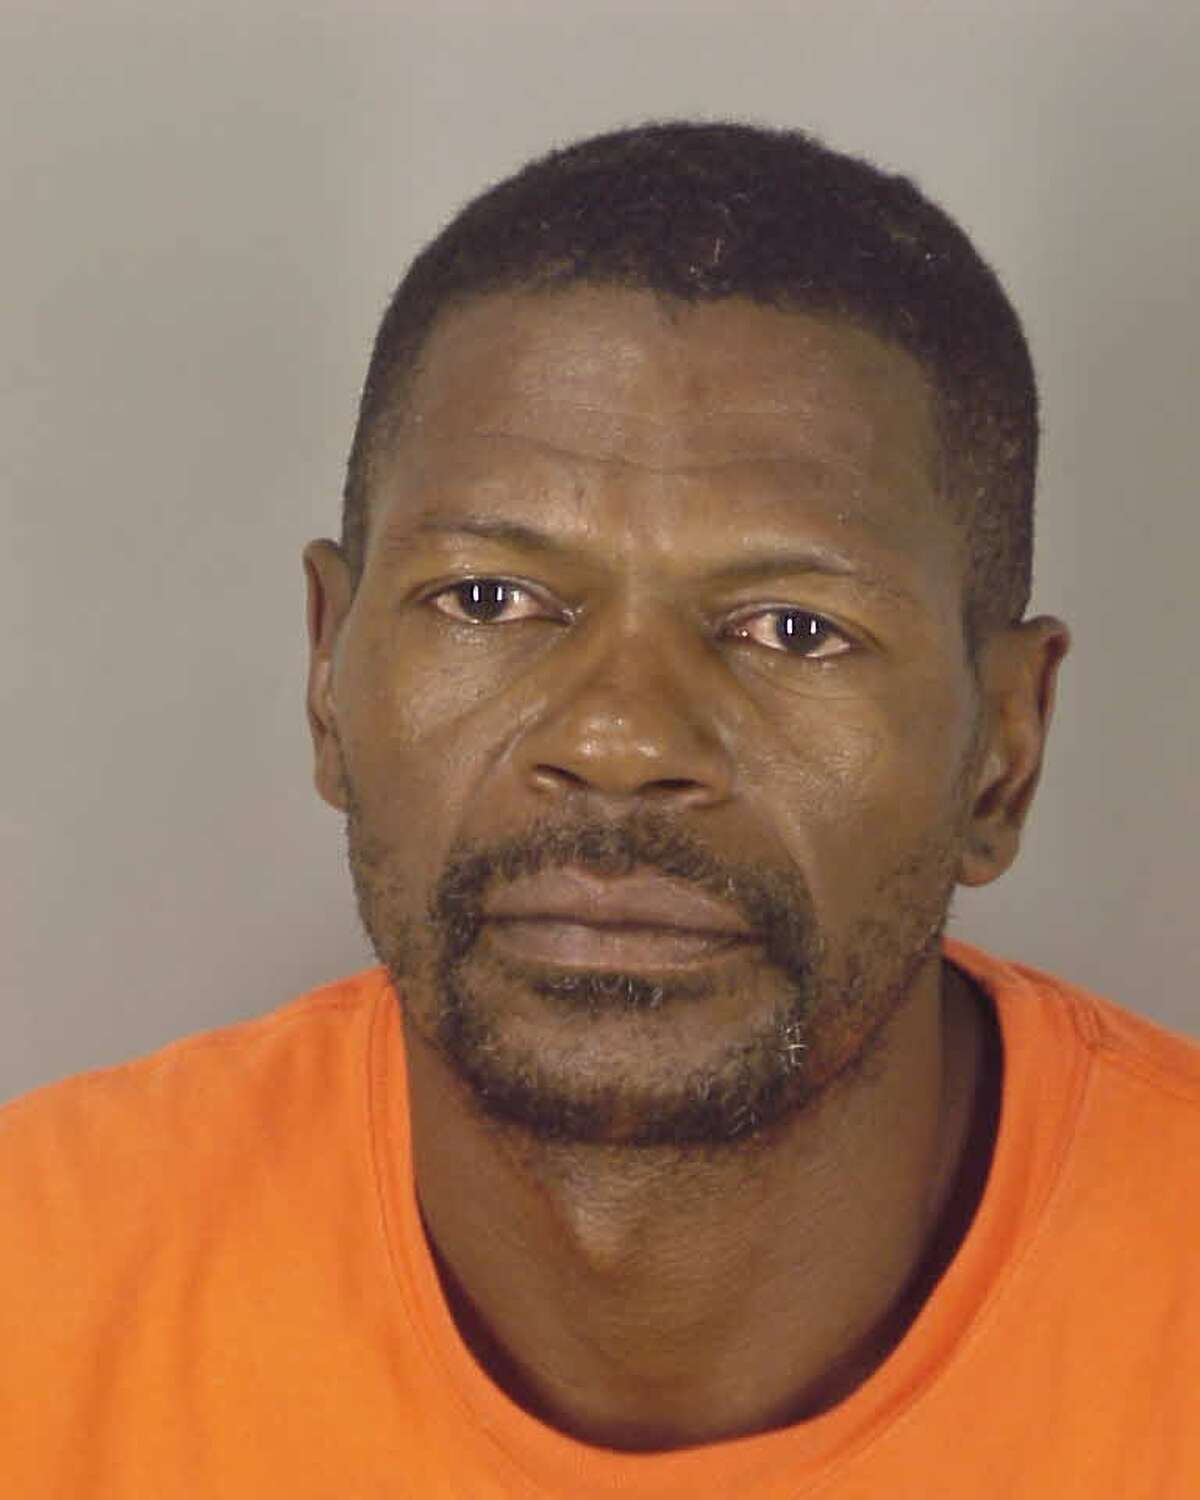 Wild Bill Jackson, 51, charged with aggravated assault.